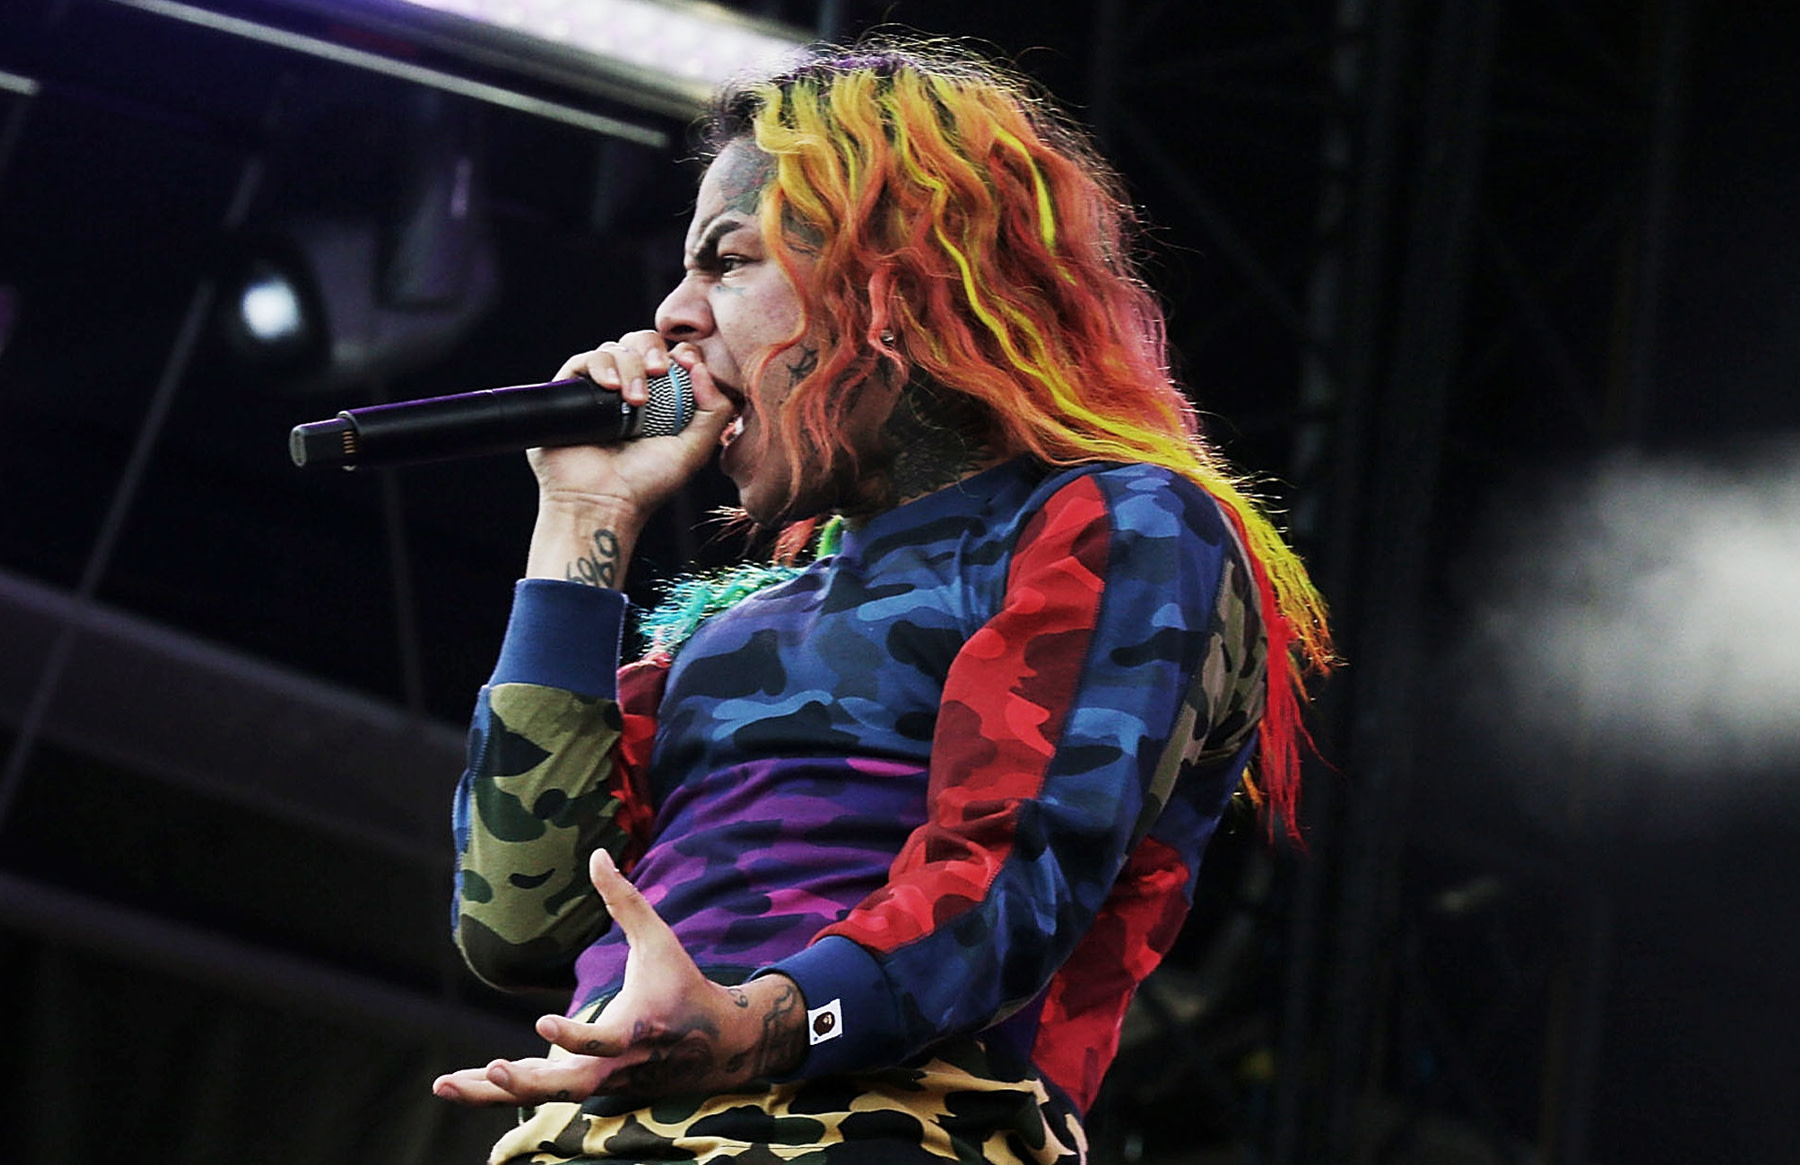 5 Big Takeaways From the Second Episode of 'Infamous: The Tekashi 6ix9ine Story'